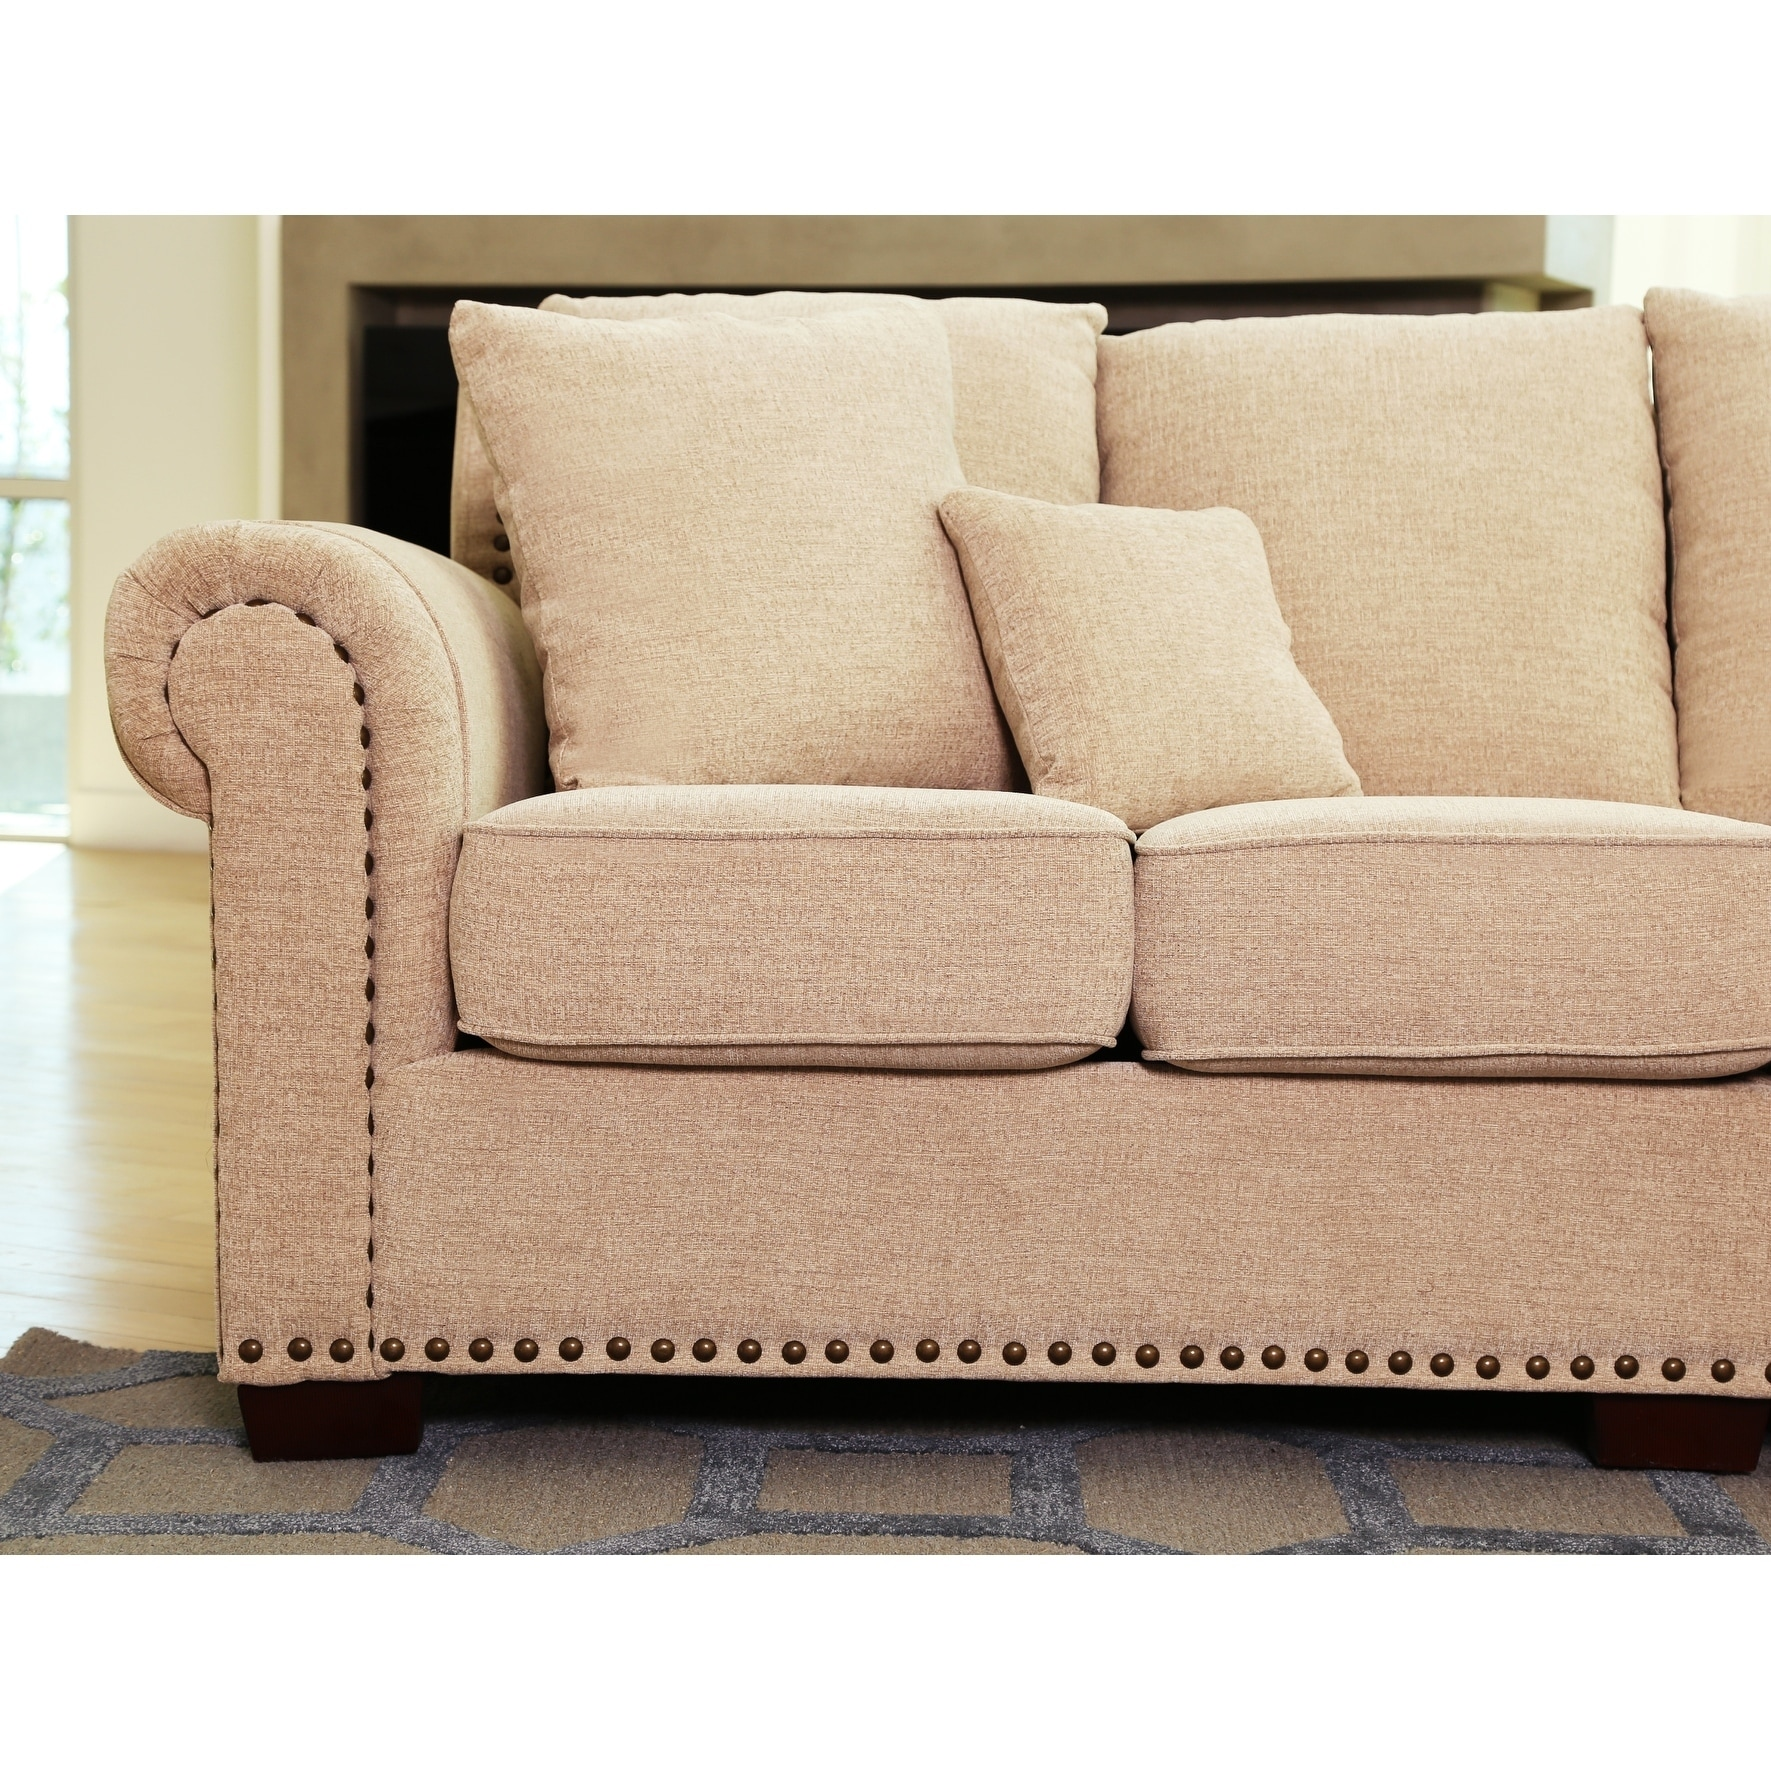 Abbyson Santa Barbara Beige Fabric Sectional On Free Shipping Today 6315945